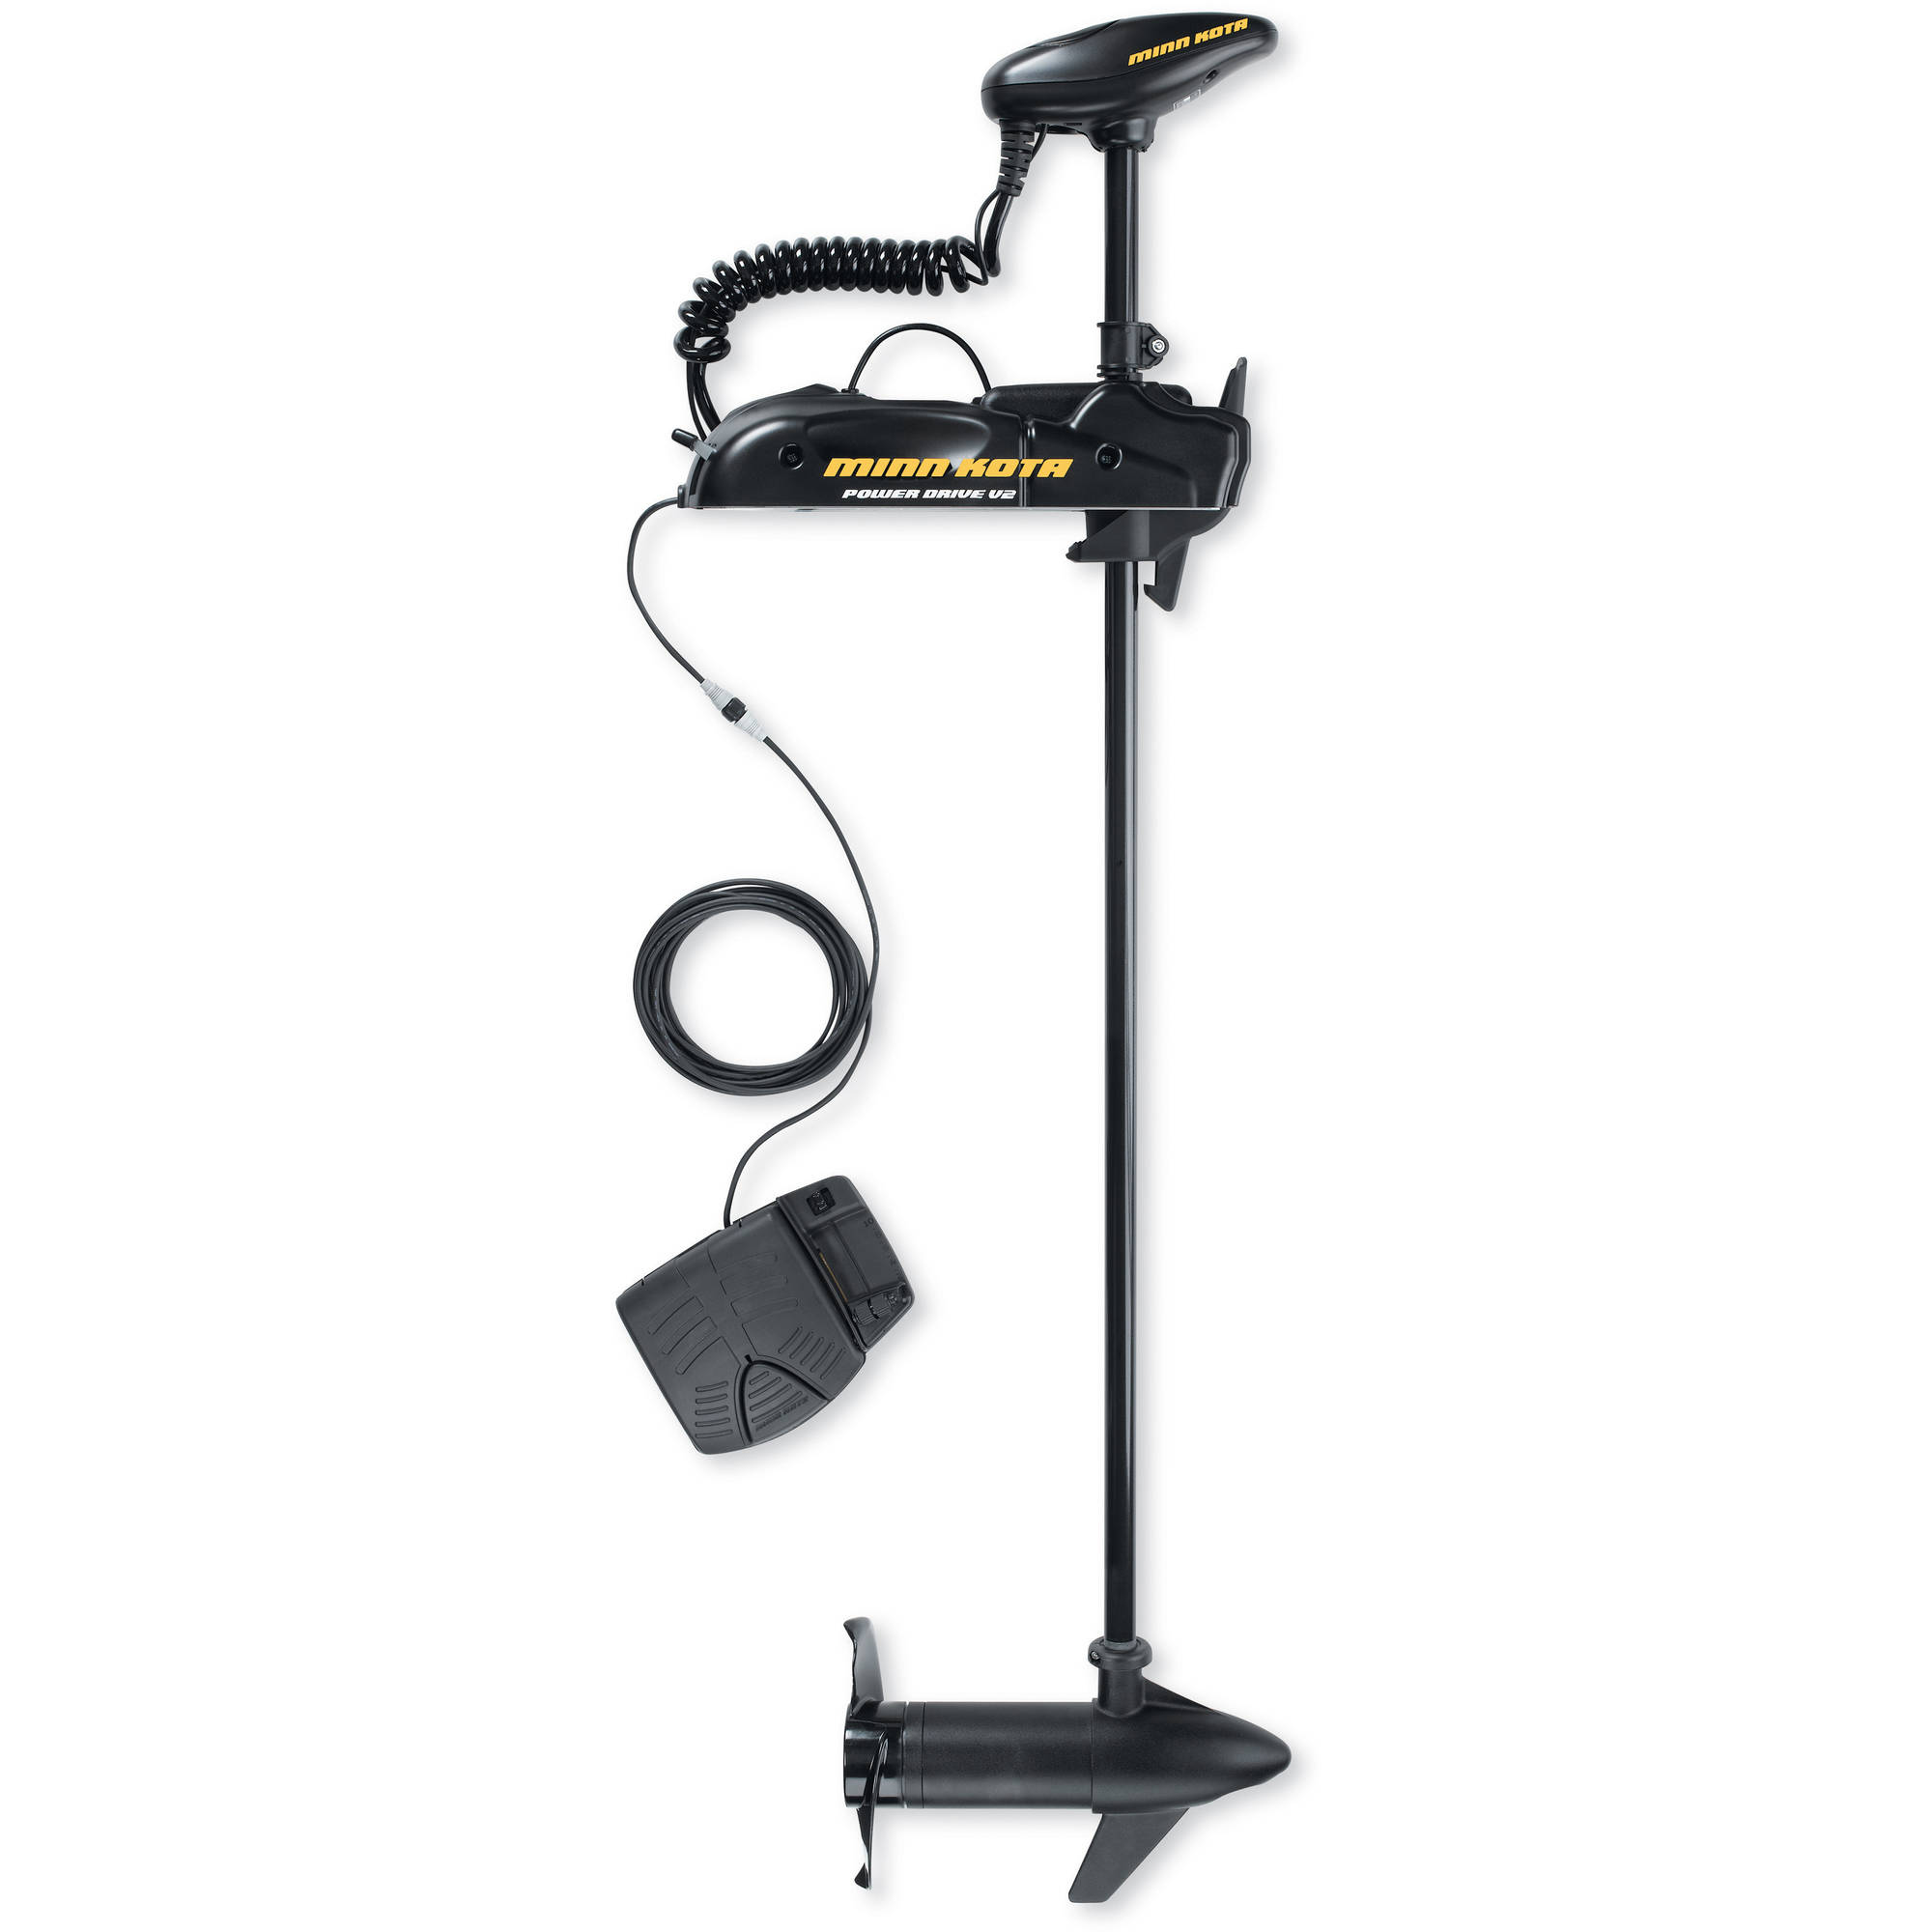 Minn Kota Powerdrive V2 70 AP US2 Freshwater Bow Mount Trolling Motor with AutoPilot and Universal Sonar, 70 lb Thrust,... by Johnson Outdoors